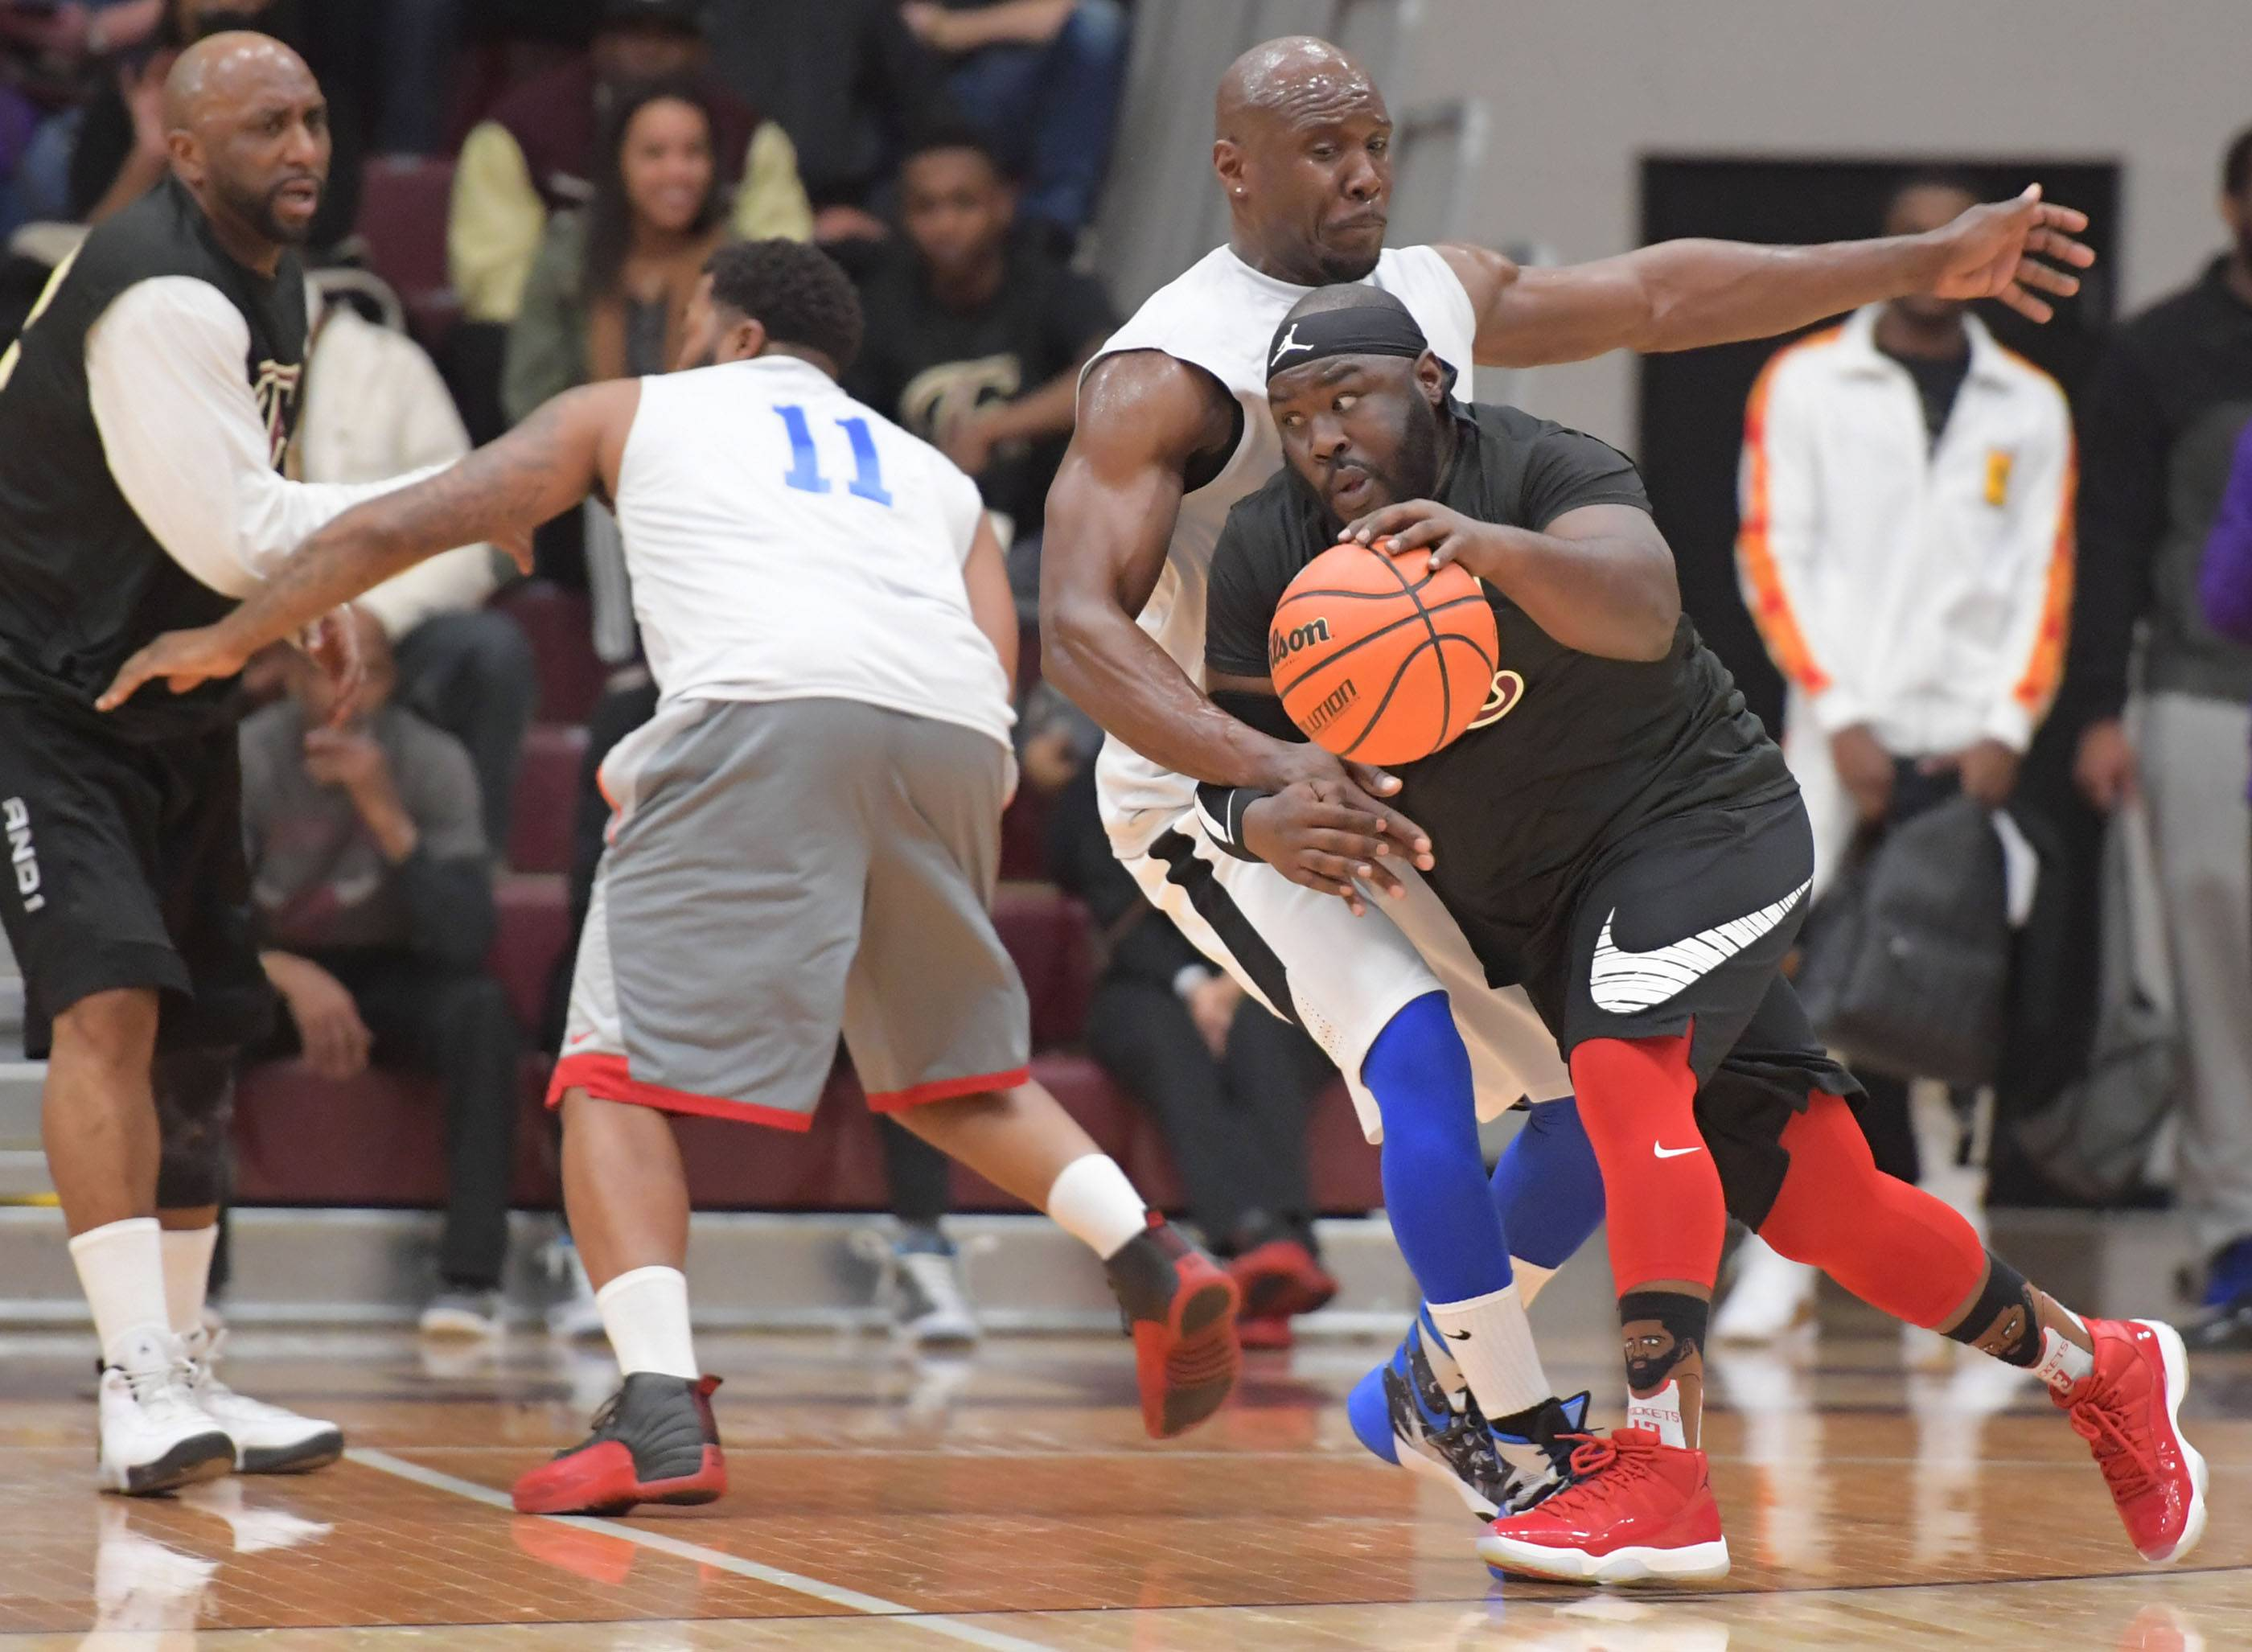 Javell Cooks, an Elgin High School alum, drives into Larkin alum David Binion at the Elgin High School vs. Larkin High School Alumni basketball game at Chesbrough Field House at Elgin High School Wednesday night.